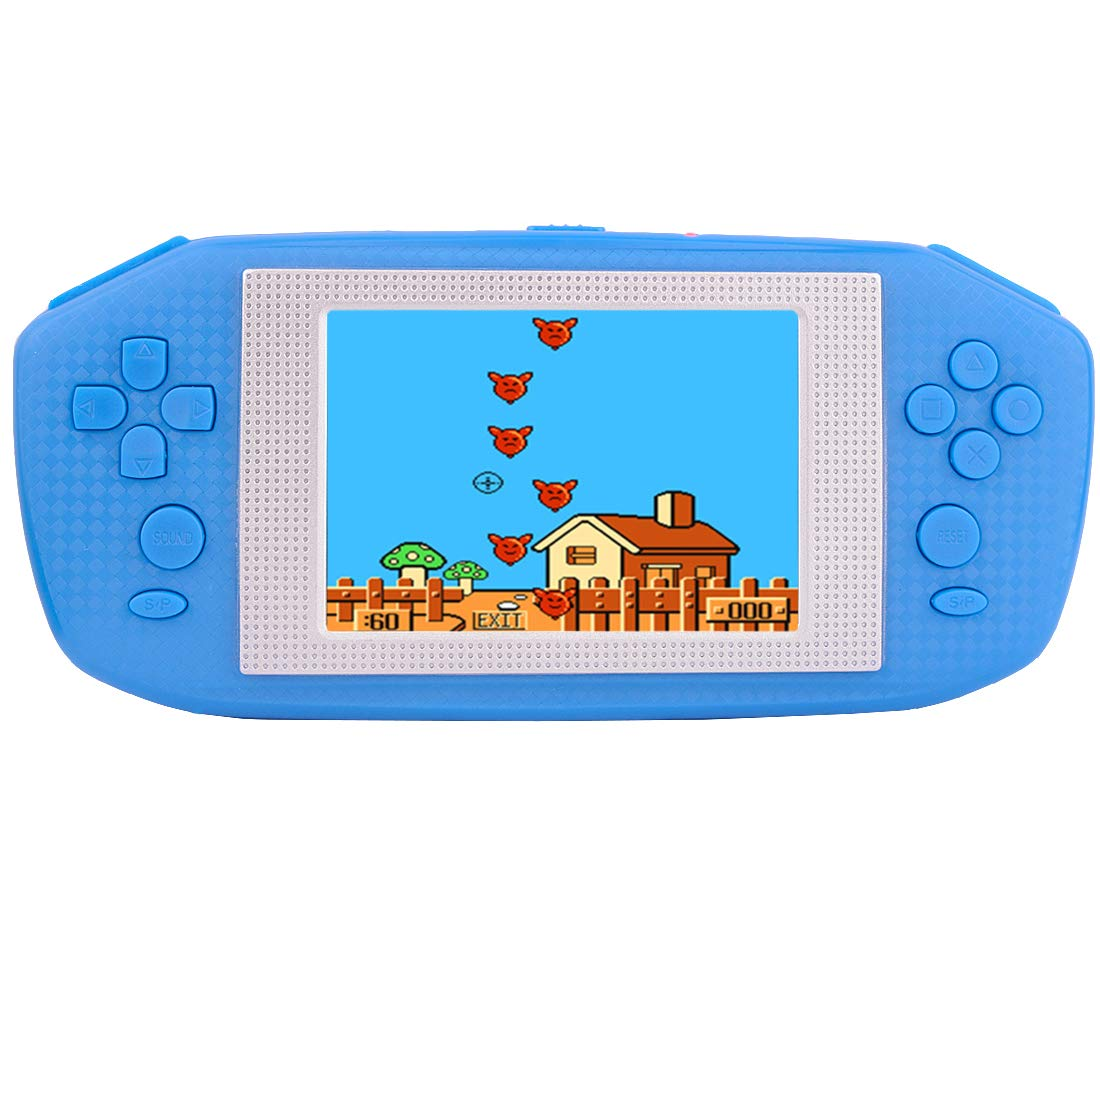 Beico Handheld Games for Kids Adults 3.5'' Large Screen Built in 416 Classic Retro Video Games Seniors Electronic Games Consoles Birthday Present (Blue)